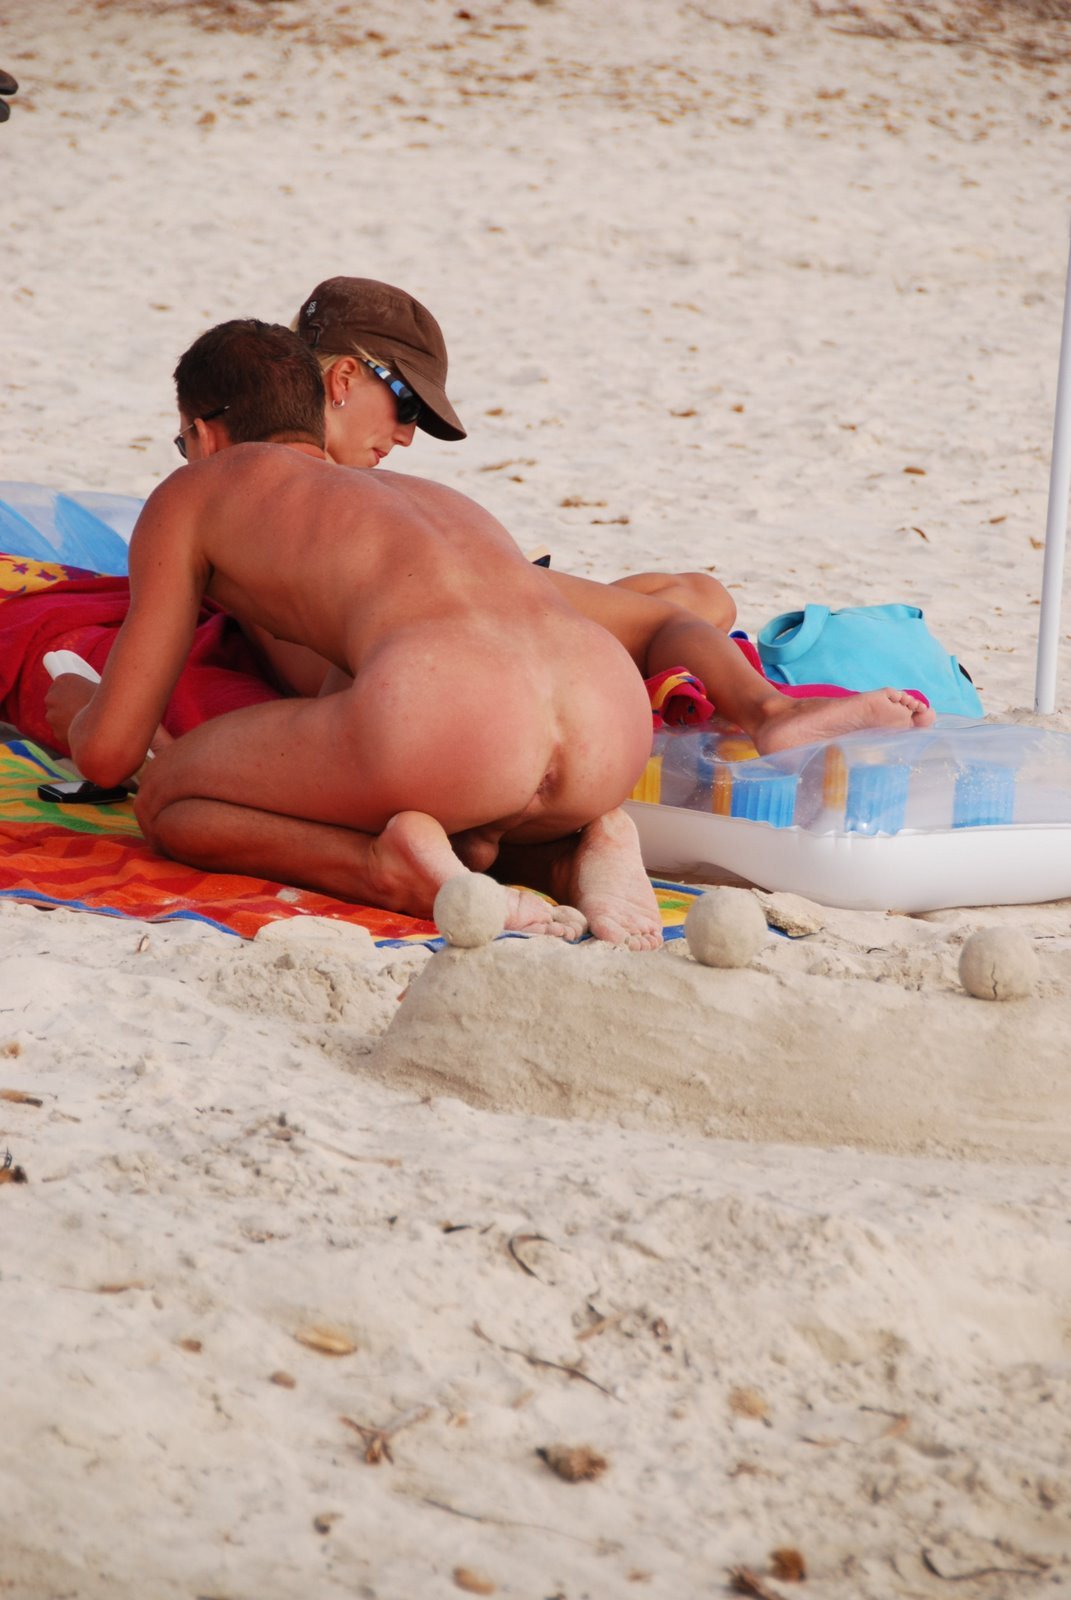 Spy Cam Dude: Hot guy in nude beach